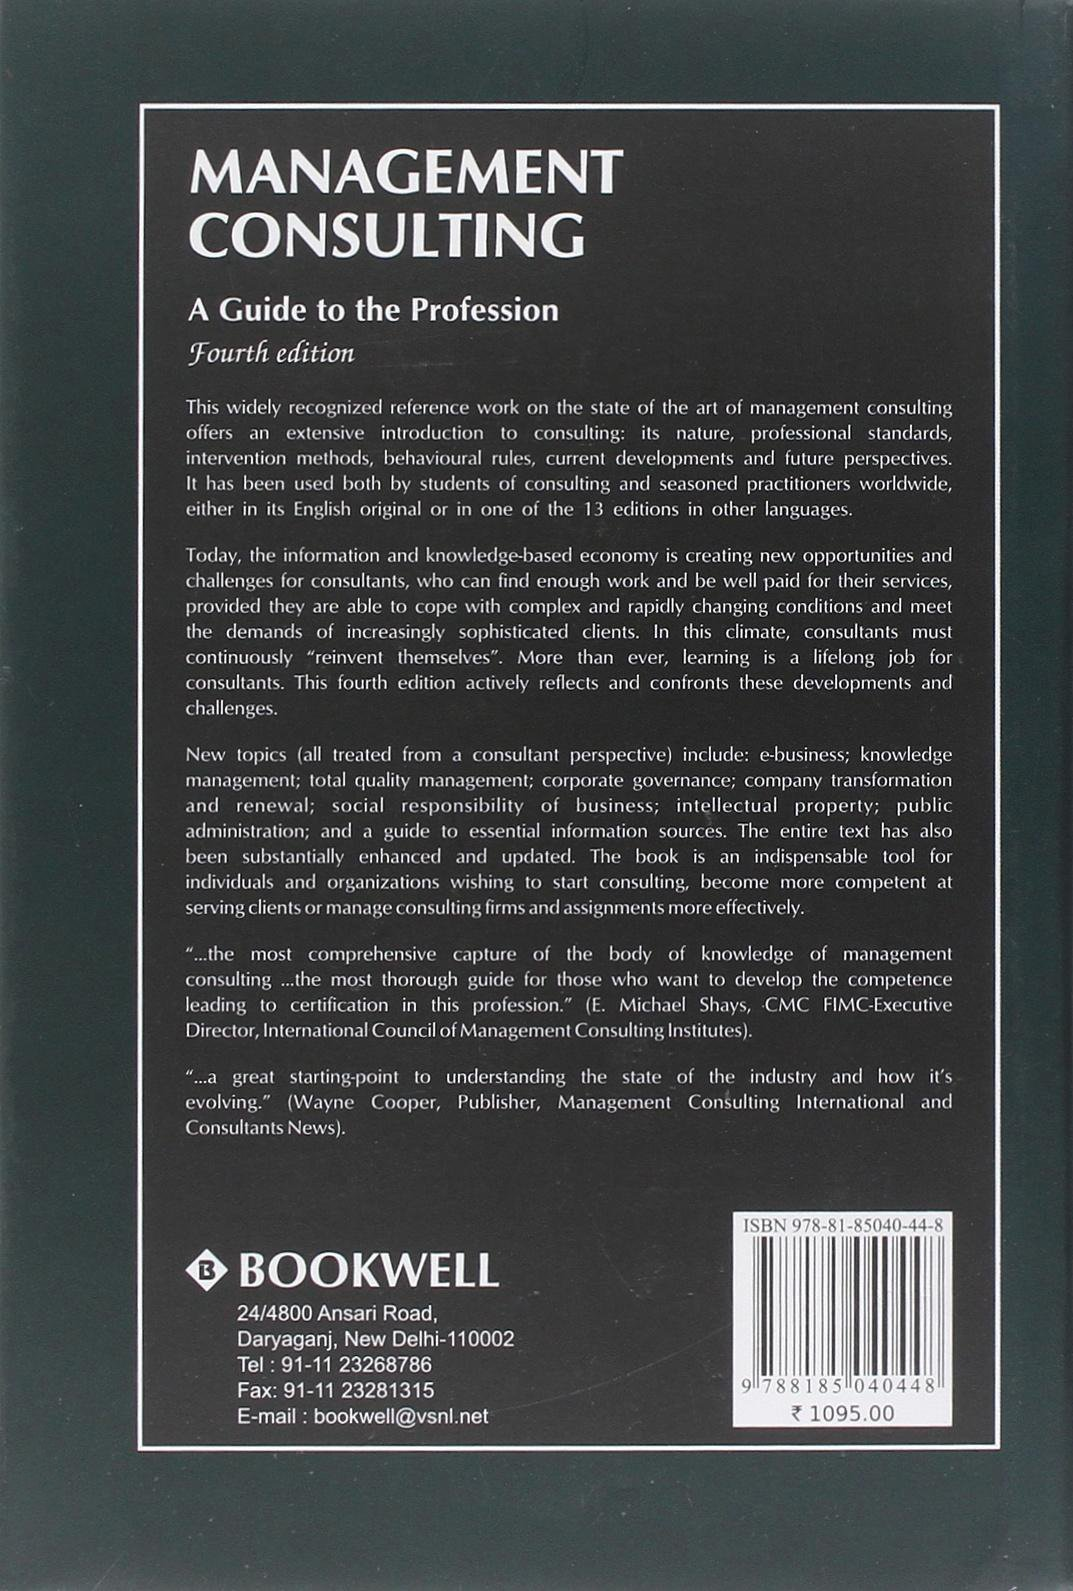 Management Consulting A Guide To The Profession Milan Kubr Milan Kubr 9788185040448 Amazon Com Books